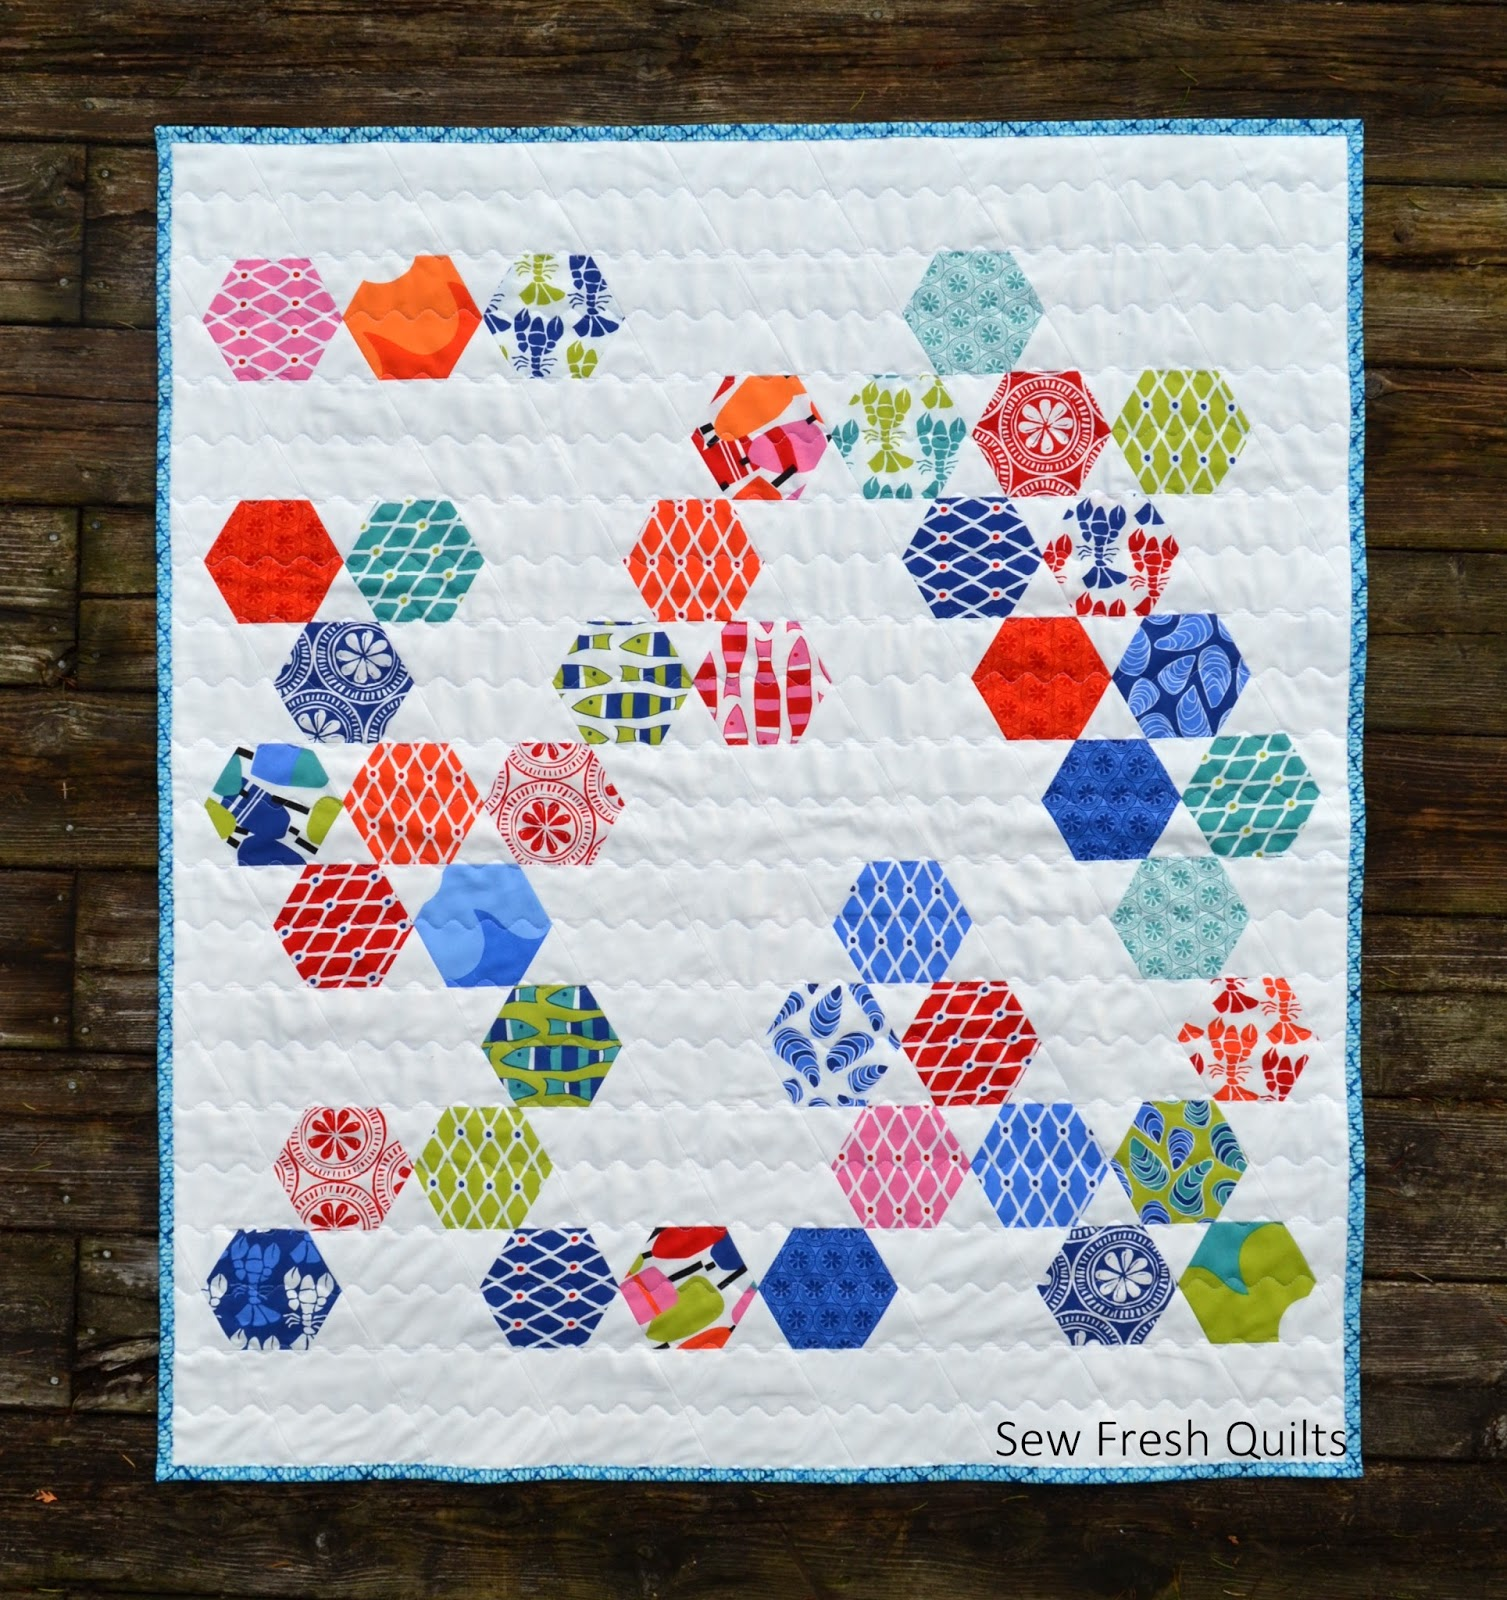 Make an Easy Baby Quilt with Hexagons and Equilateral Triangles ... : how to make hexagons for quilts - Adamdwight.com